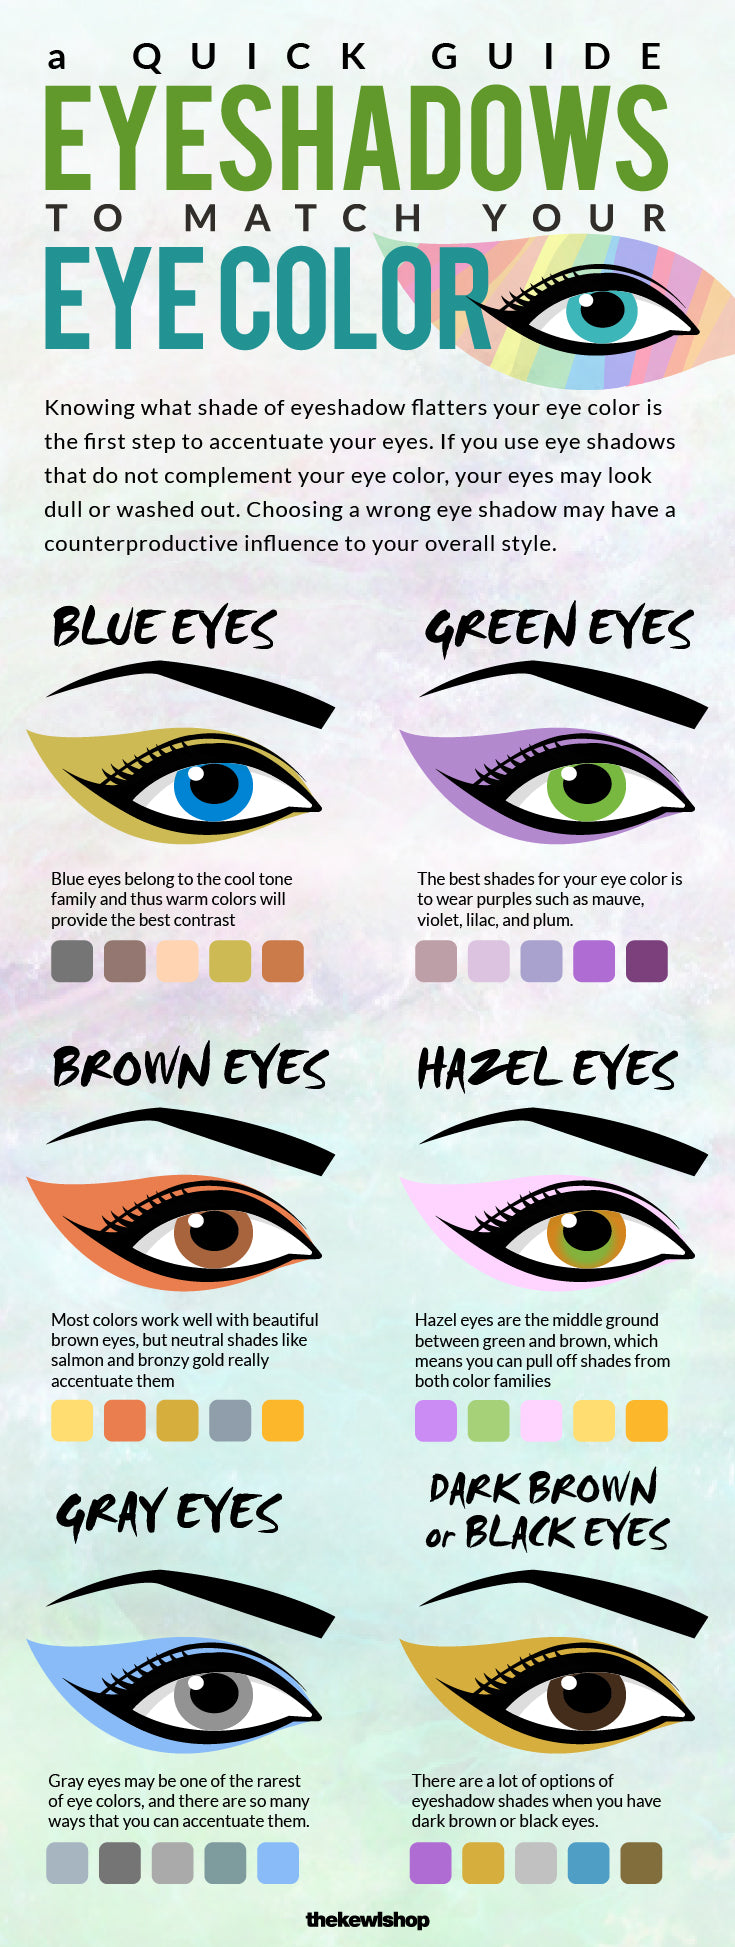 Choosing the right eyeshadow for your eye color